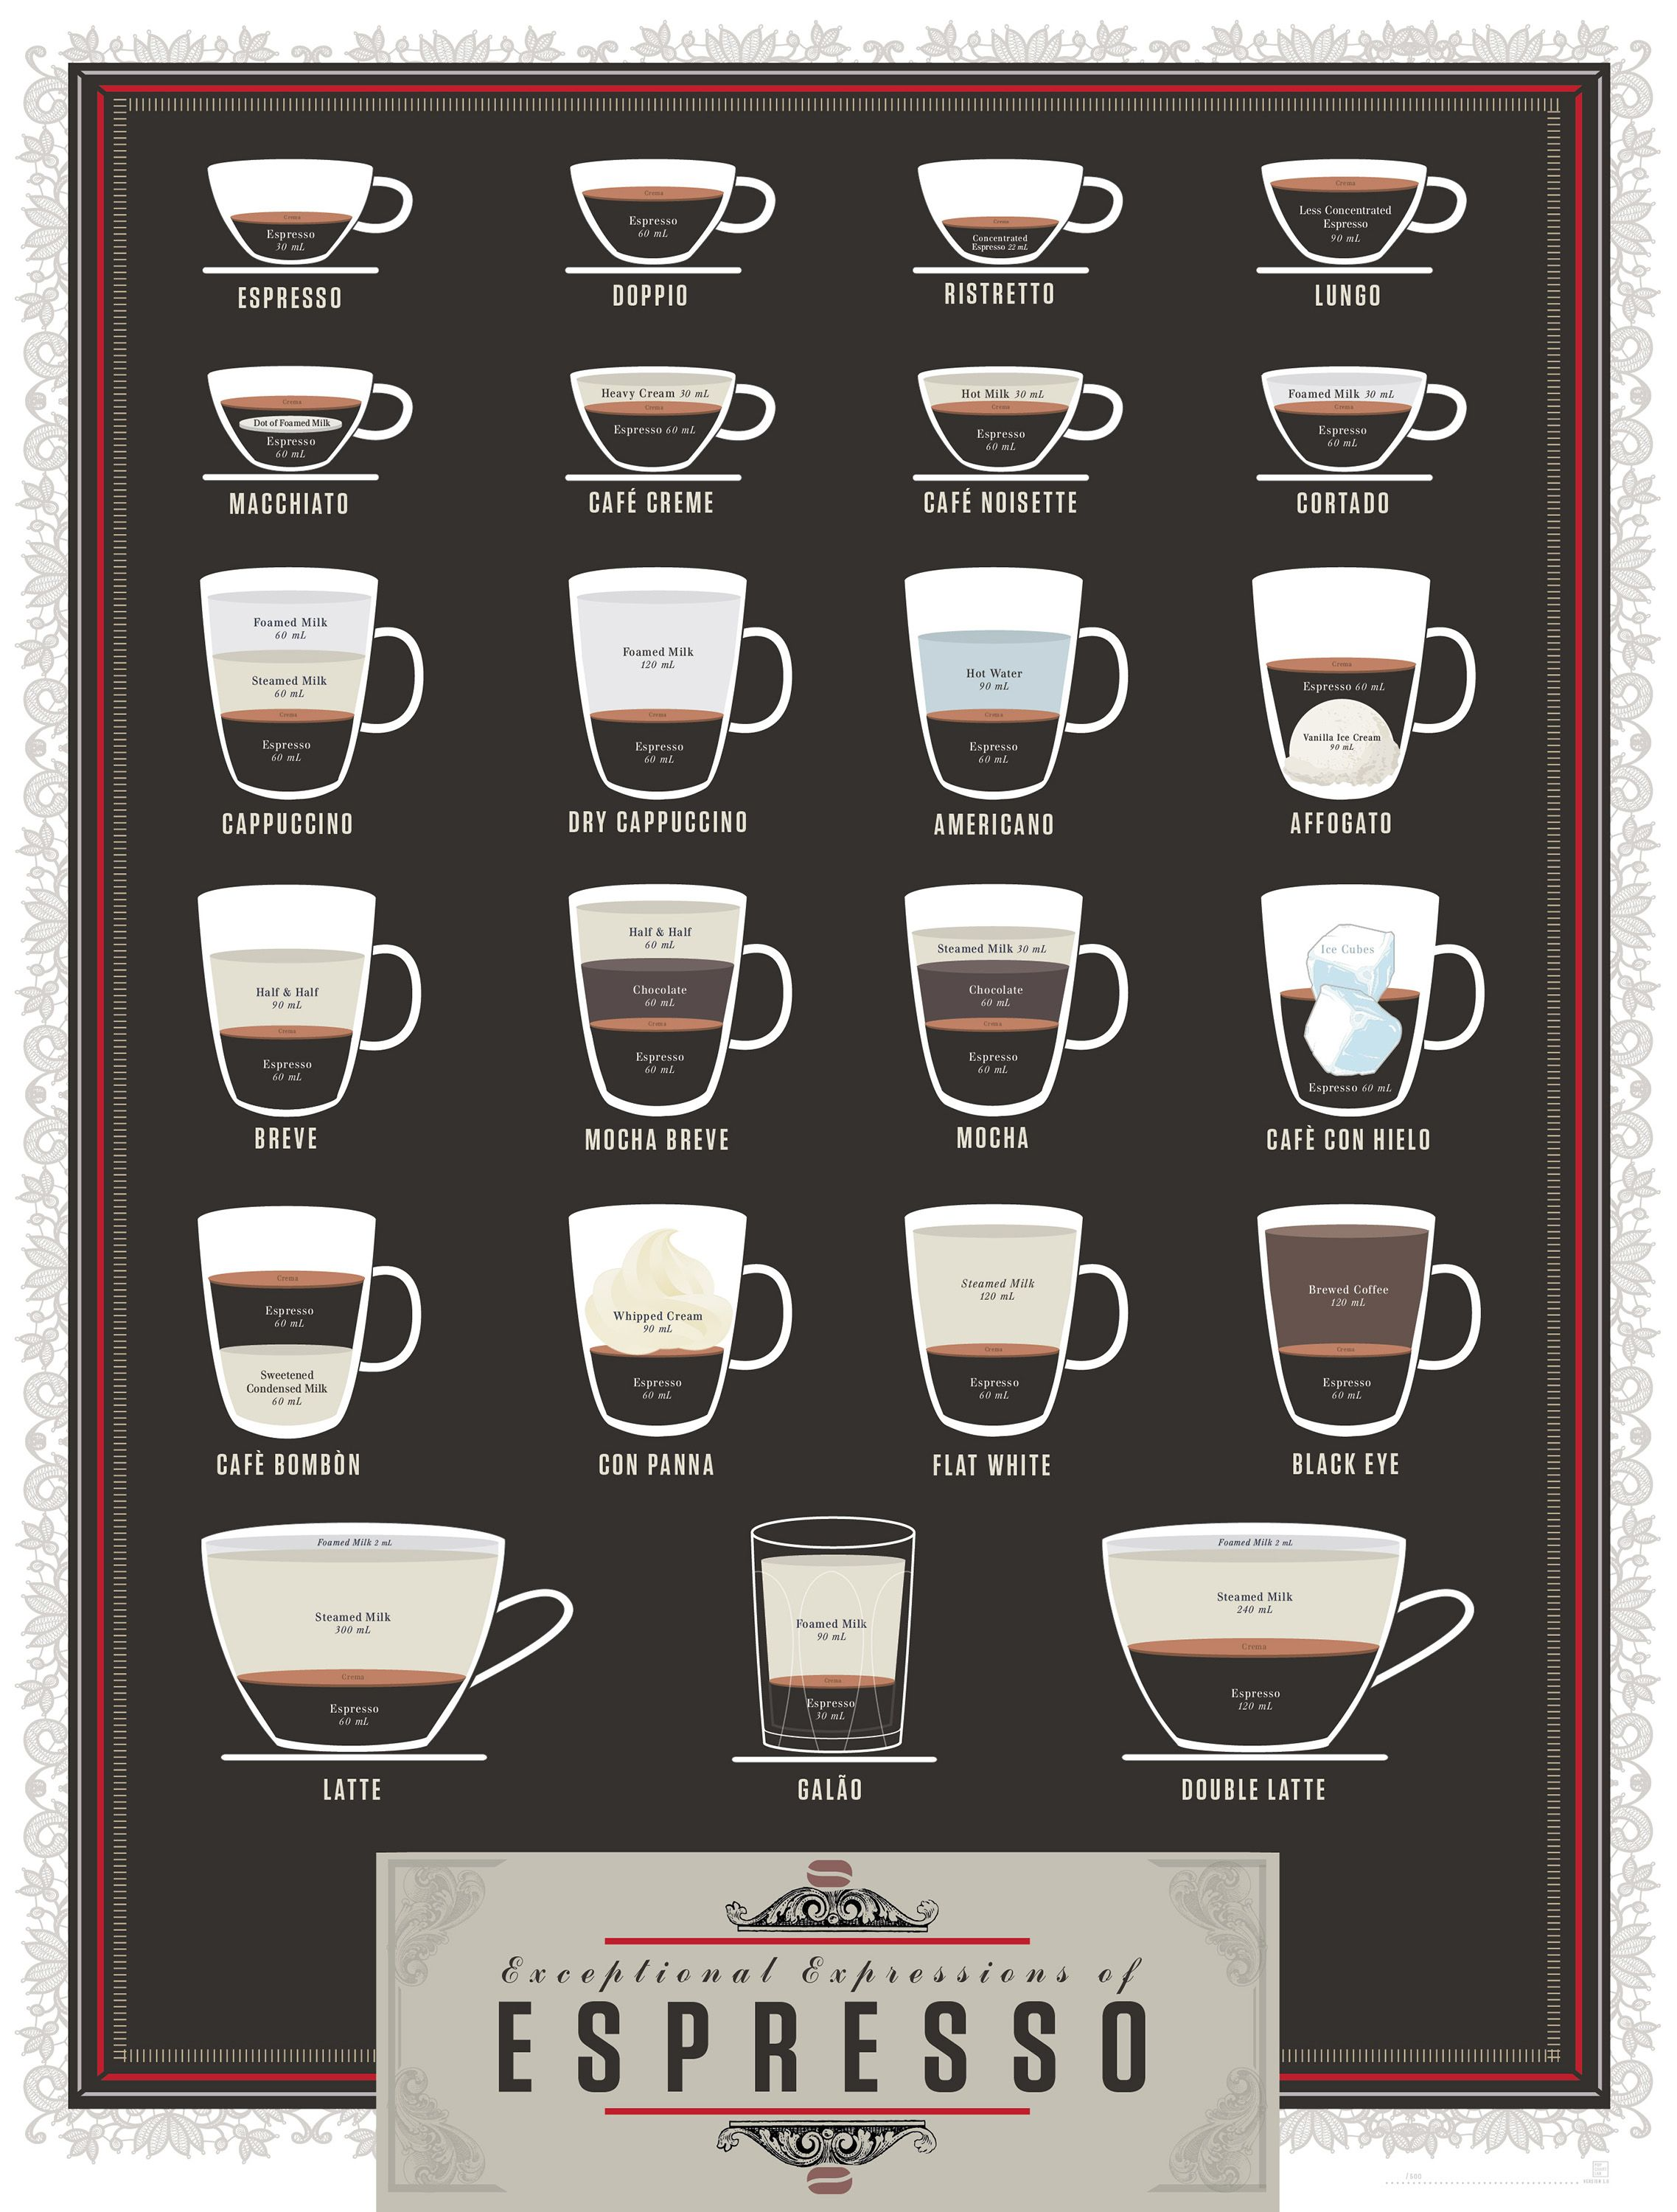 Somebody Should Notify Starbucks About These Details Clear Explanation Of Espresso On A Beautiful Grid